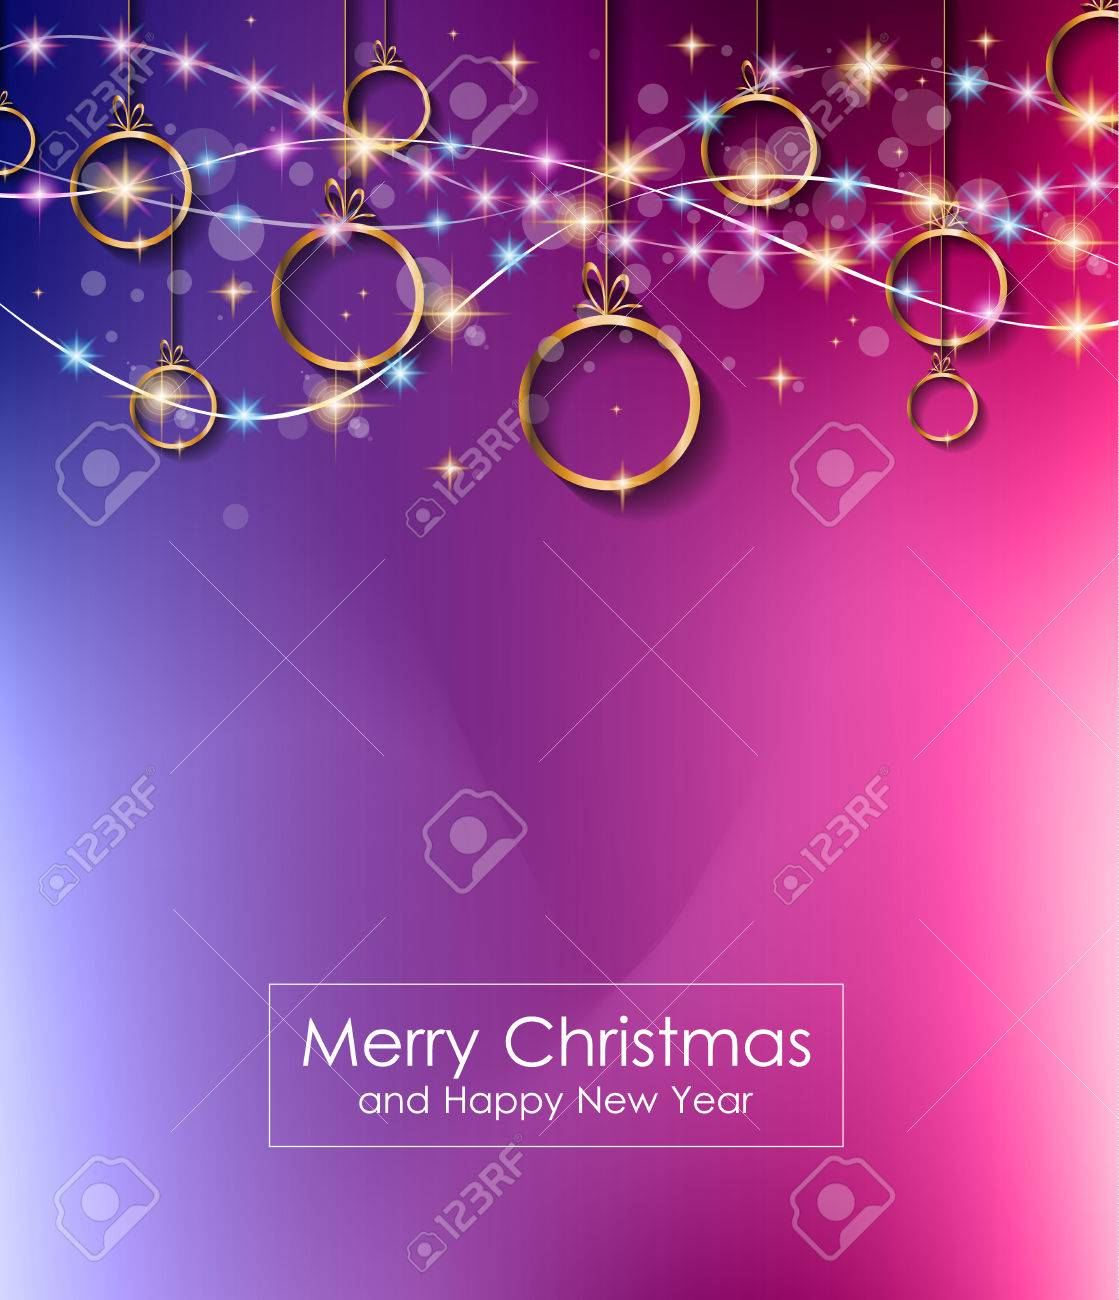 christmas lights background for your seasonal wallpapers happy new year backgrounds greetings card